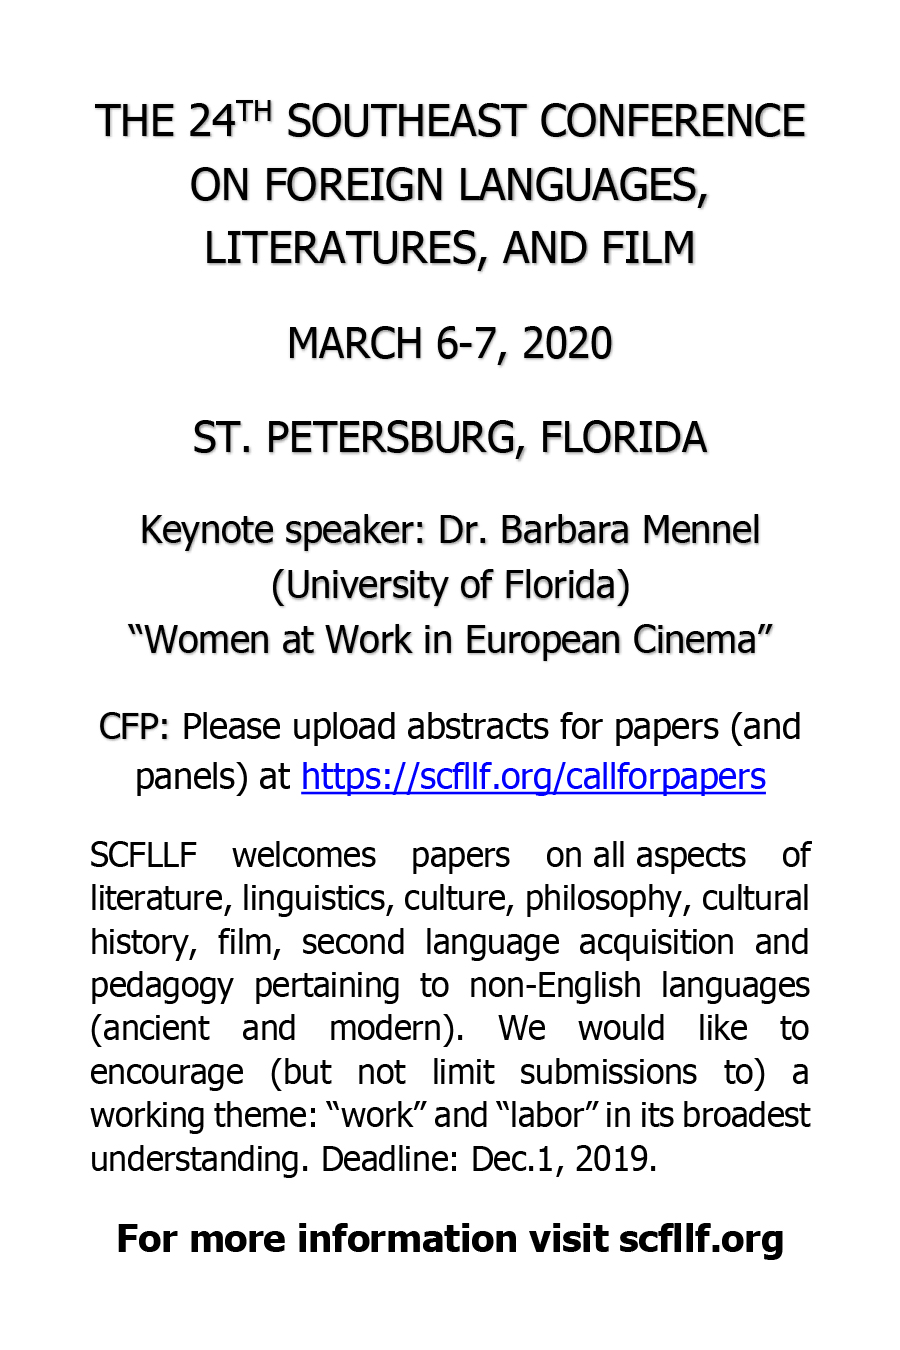 Southeast Conference on Foreign Languages, Liteartures, and Film Ad 2019